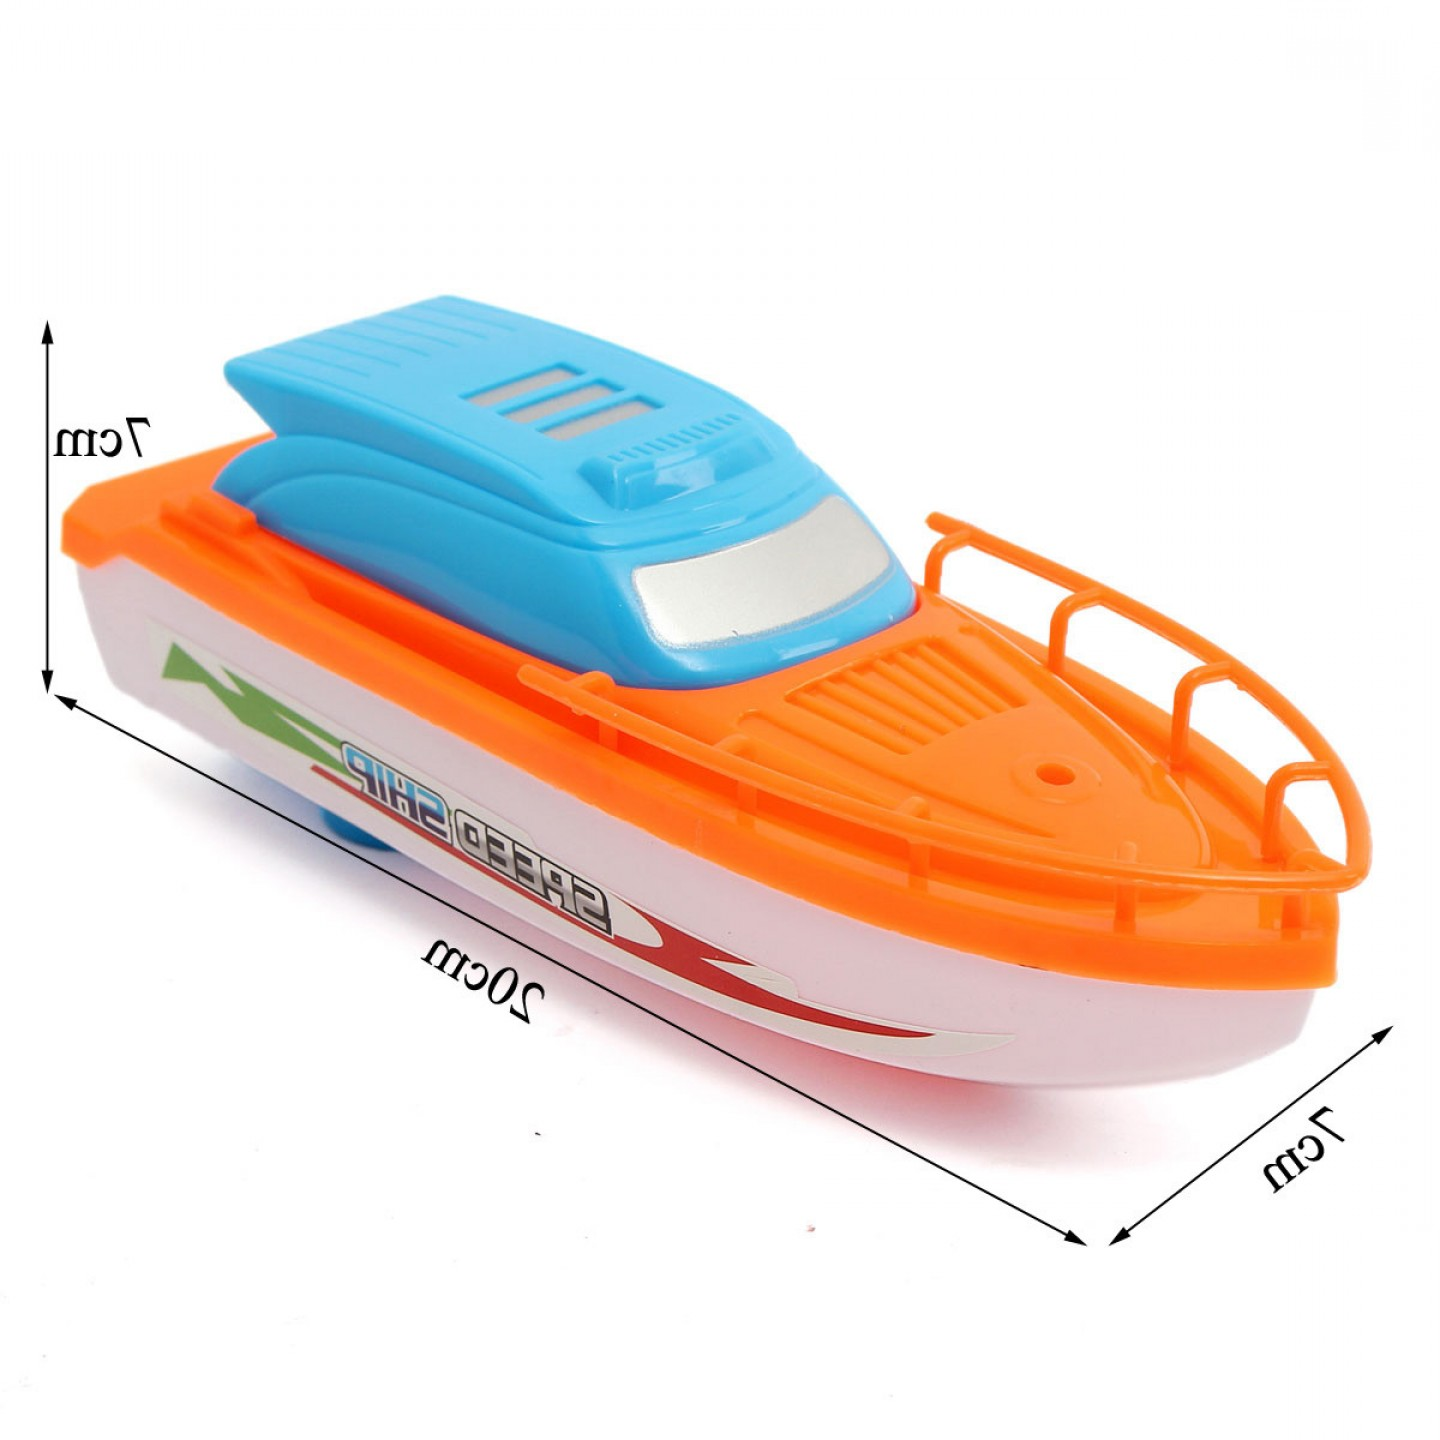 1440x1440 Luxury Toy Boats For Kids In Babyequipment Remodel Ideas With Toy